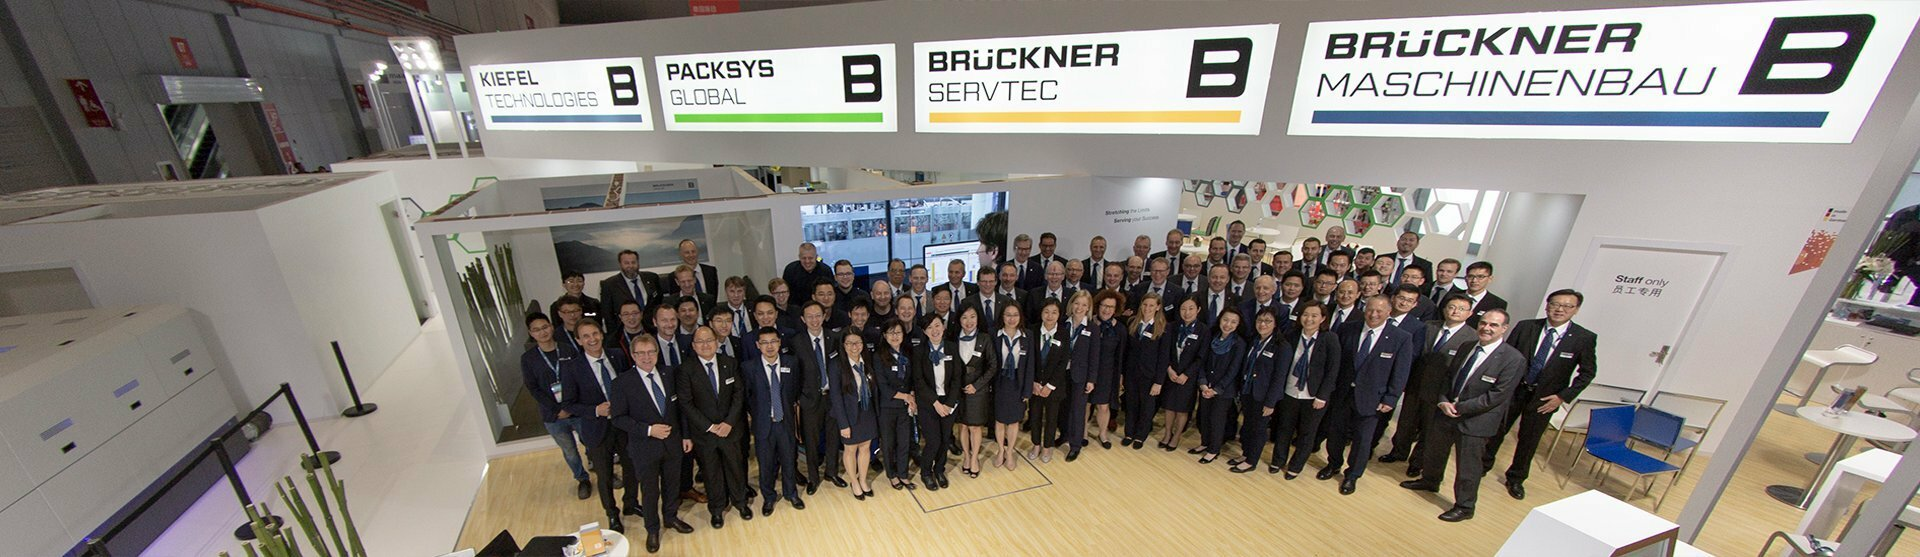 Brückner Servtec: Events